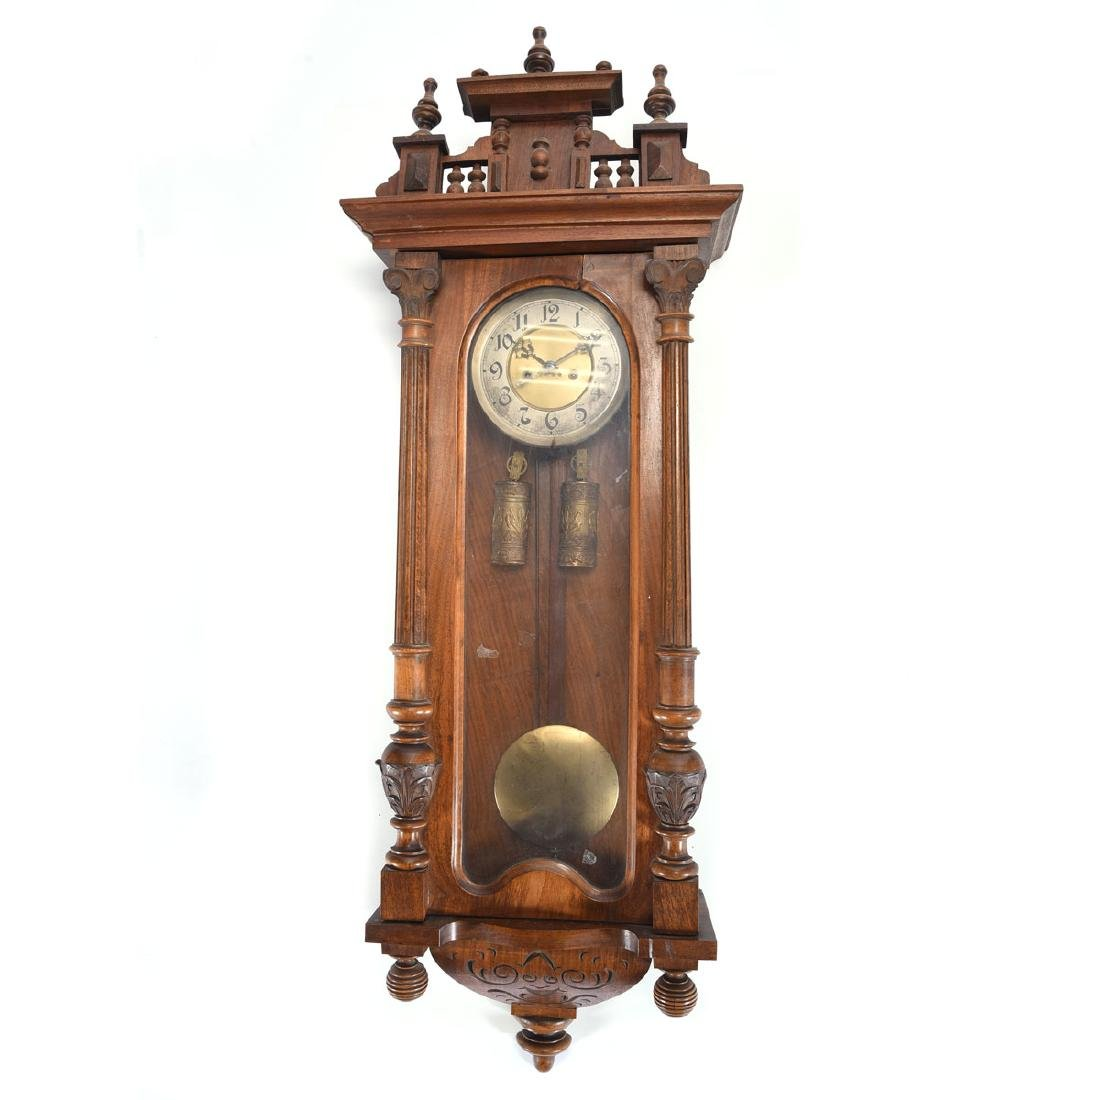 Renaissance Revival Regulator Wall Clock